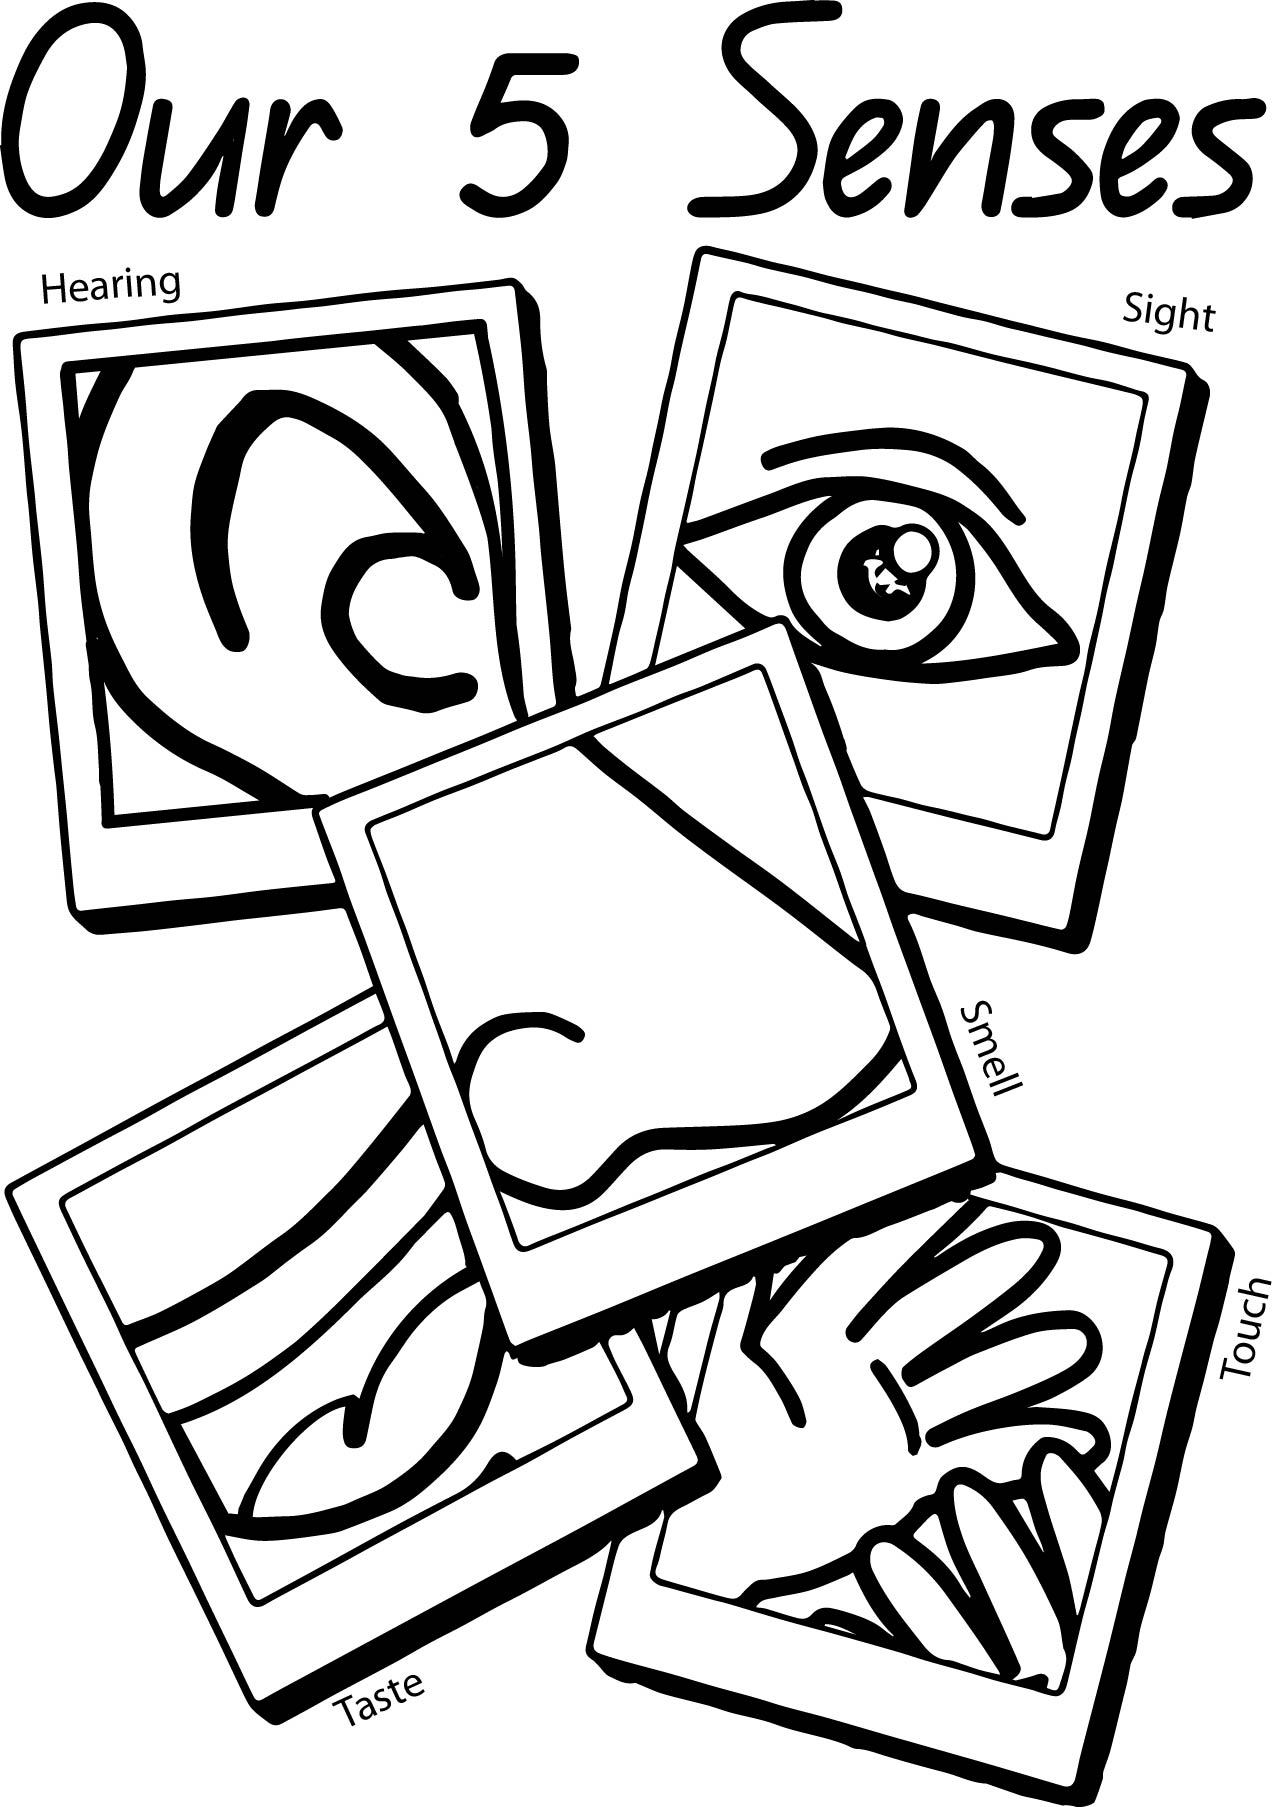 1283x1807 Our 5 Senses Page Coloring Page Wecoloringpage